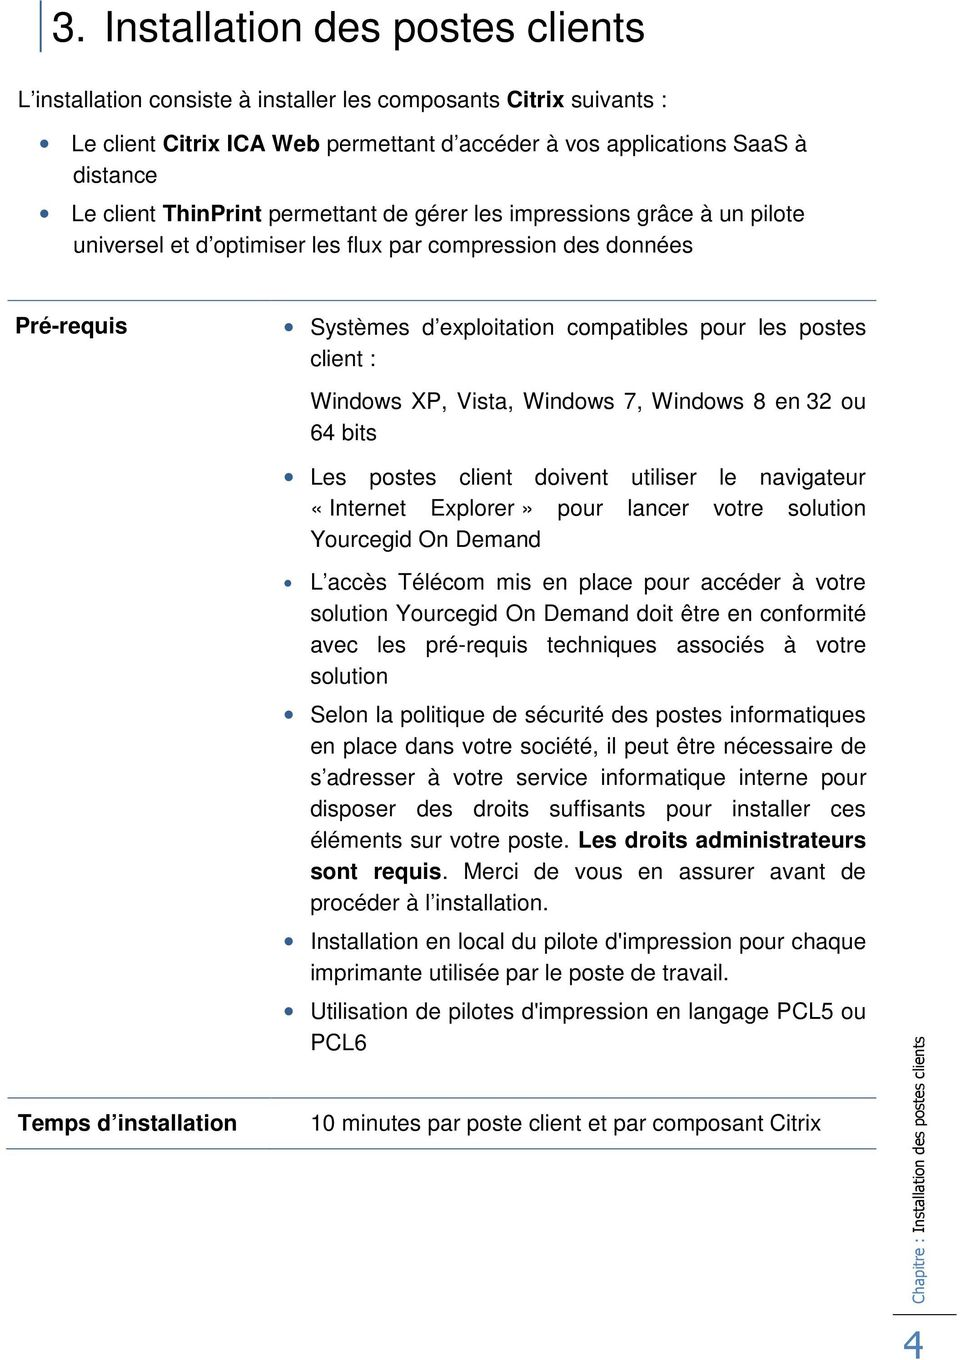 Windows XP, Vista, Windows 7, Windows 8 en 32 ou 64 bits Les postes client doivent utiliser le navigateur «Internet Explorer» pour lancer votre solution Yourcegid On Demand Temps d installation L